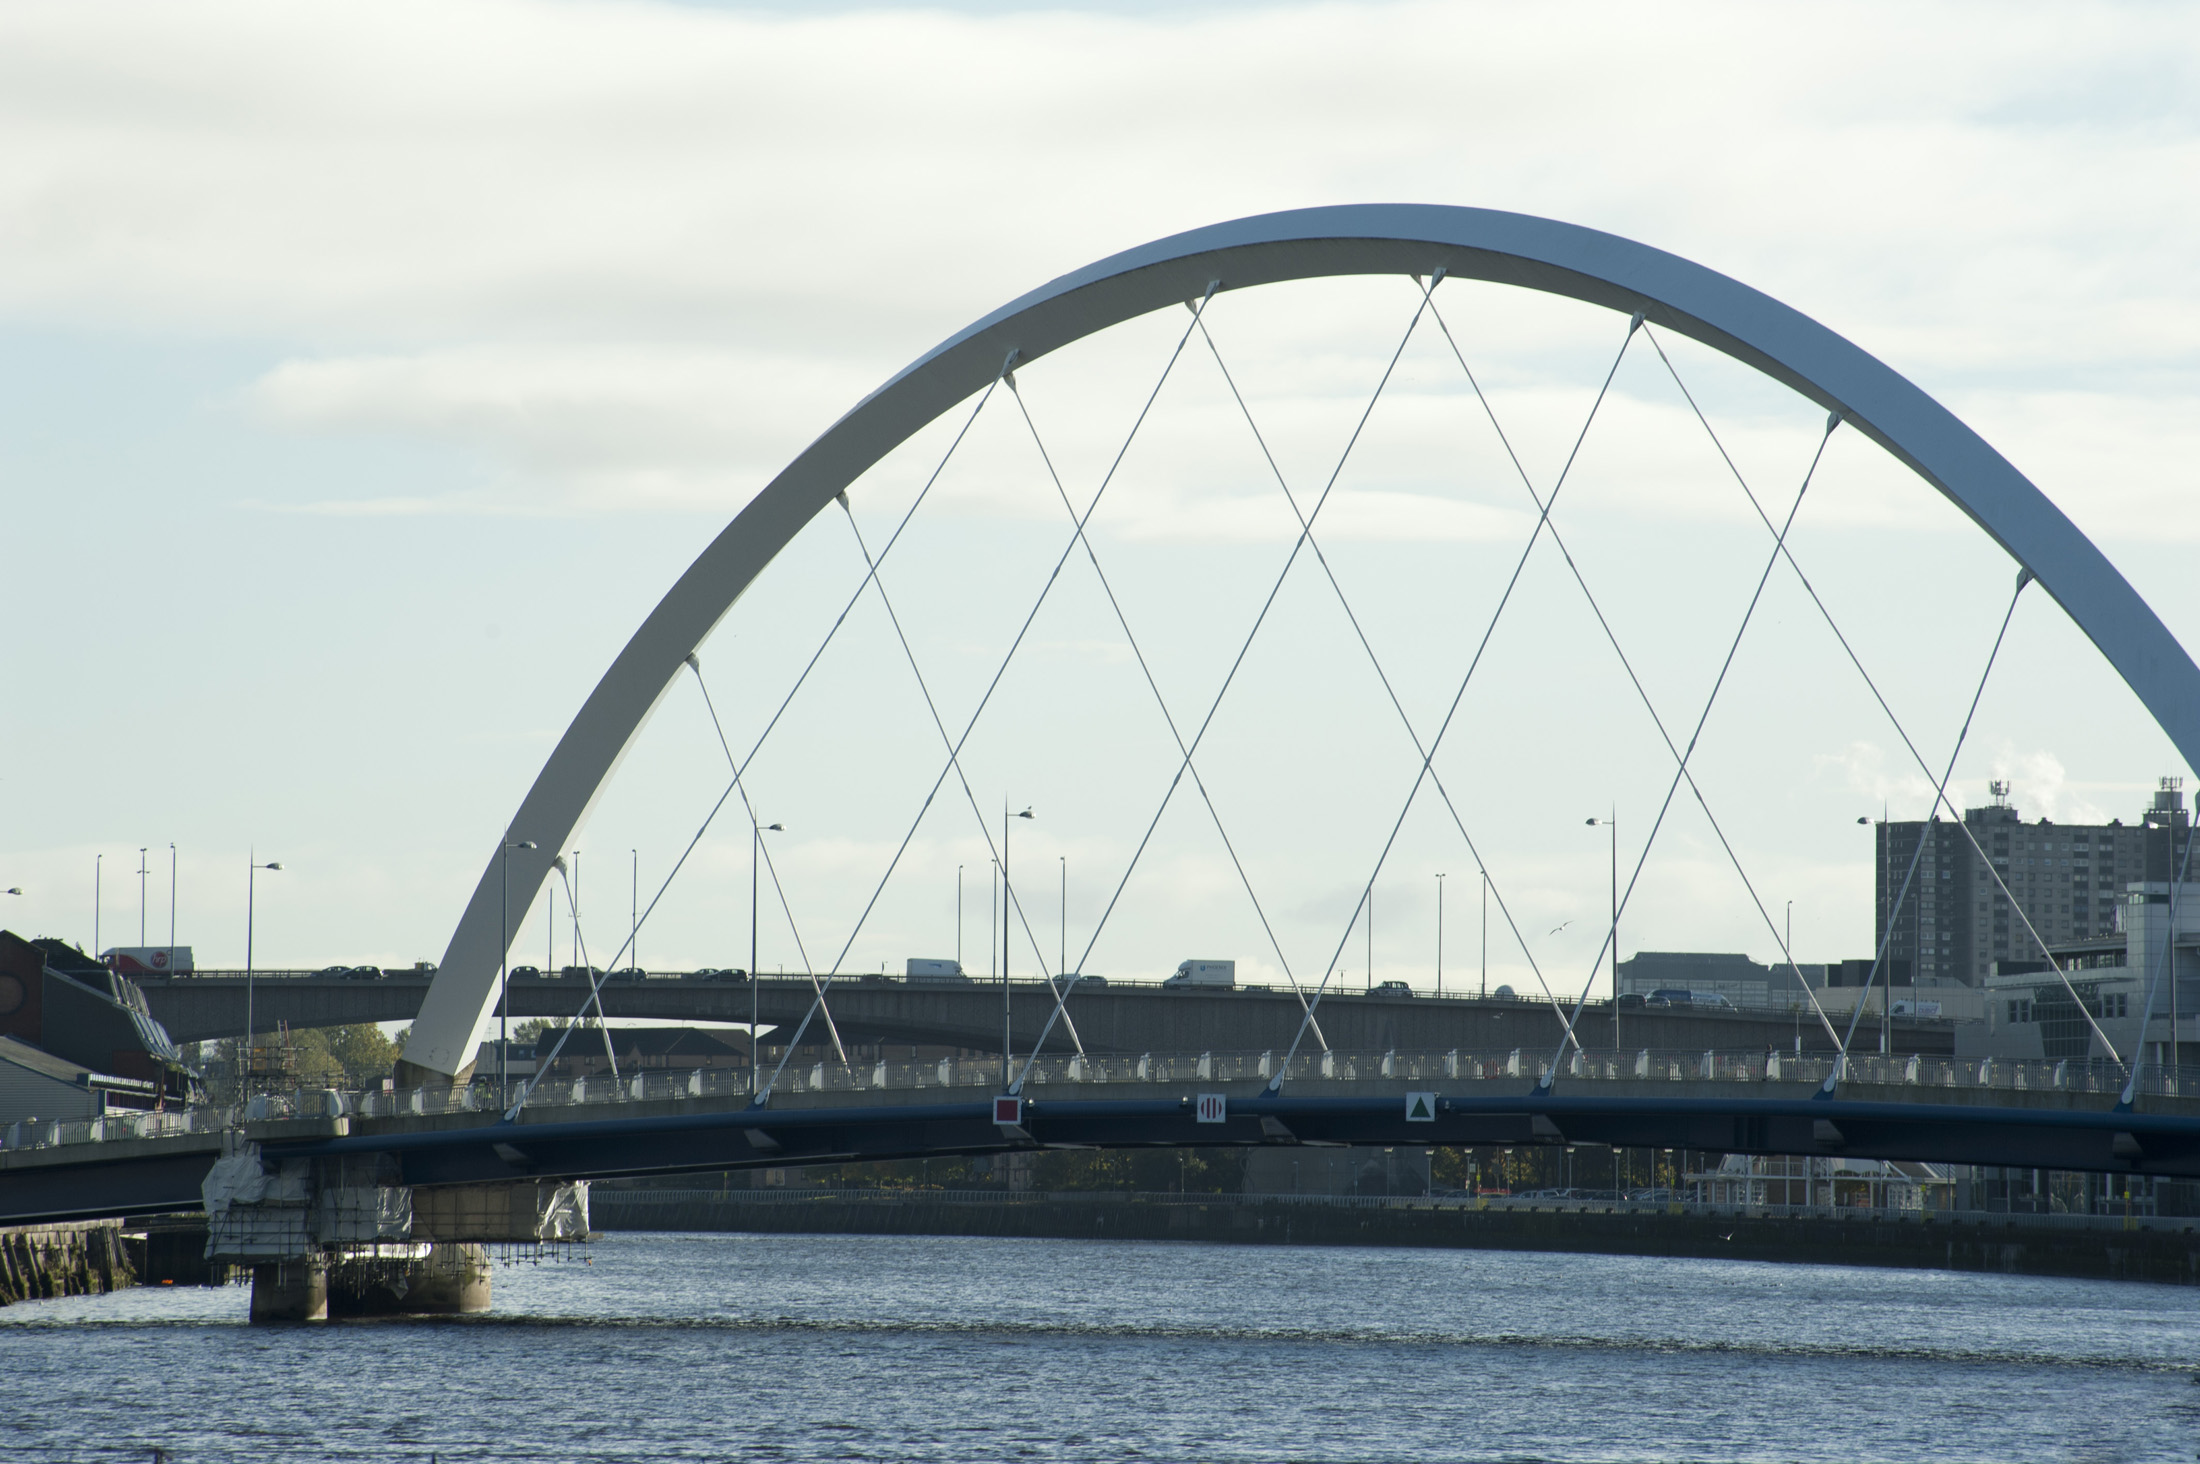 The Clyde Arc in Glagsow, Scotland, a modern road bridge spanning the River Clyde with a steel arc above the span